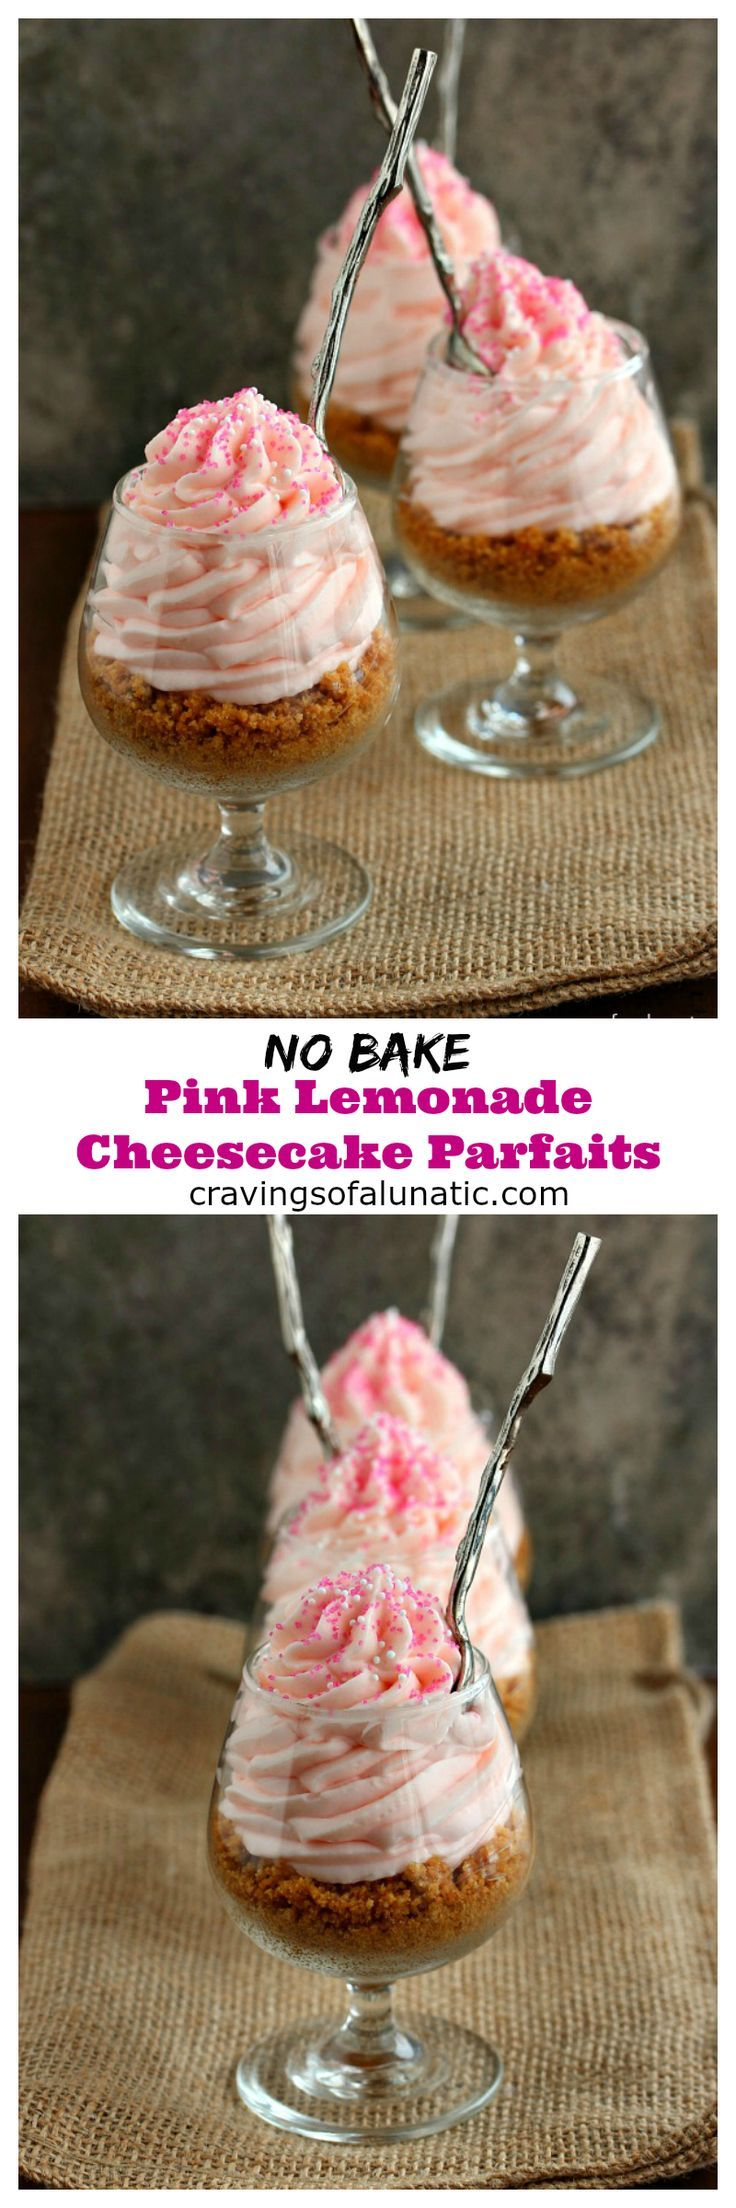 No Bake Pink Lemonade Cheesecake Parfaits from cravingsofalunatic.com- These super easy to make No Bake Pink Lemonade Cheesecake Parfaits are absolutely scrumptious. These will have you stealing them from your family members. No lie! @CravingsLunatic